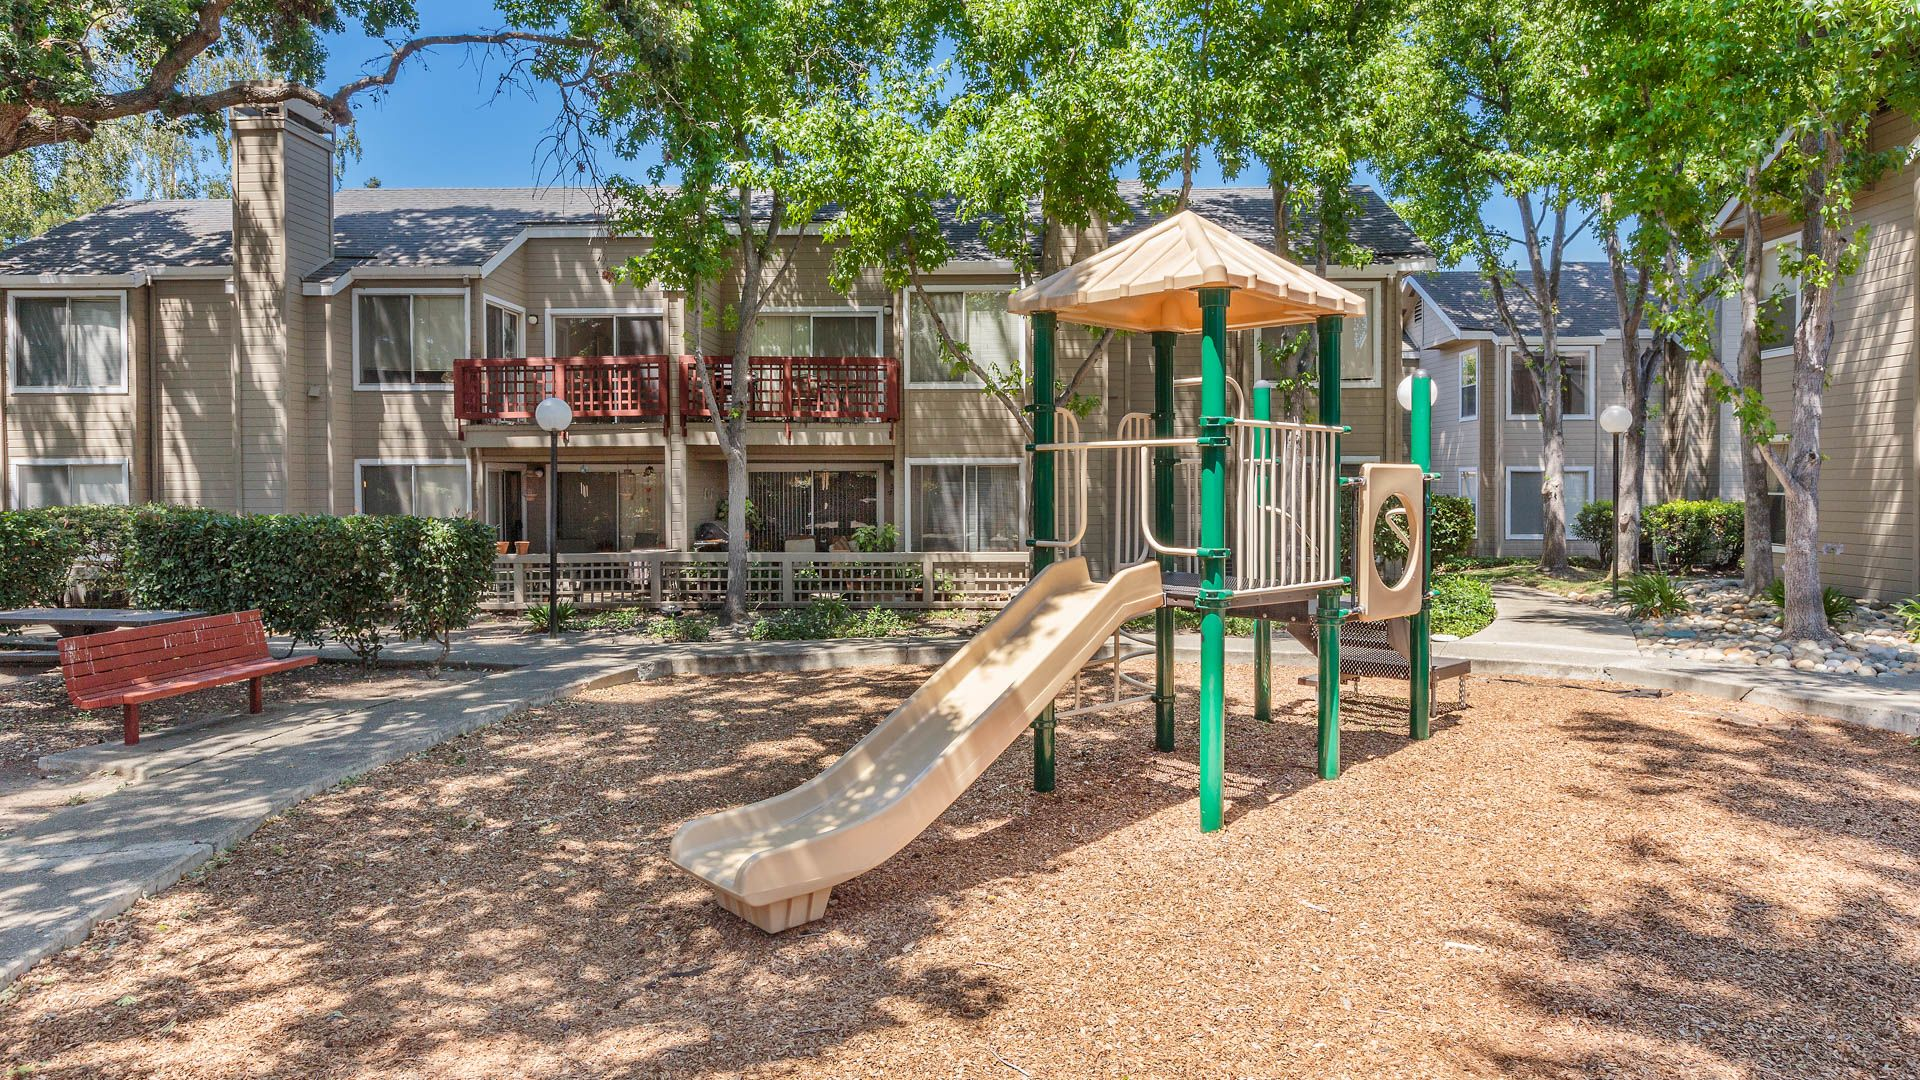 Wood Creek Apartments - Playground